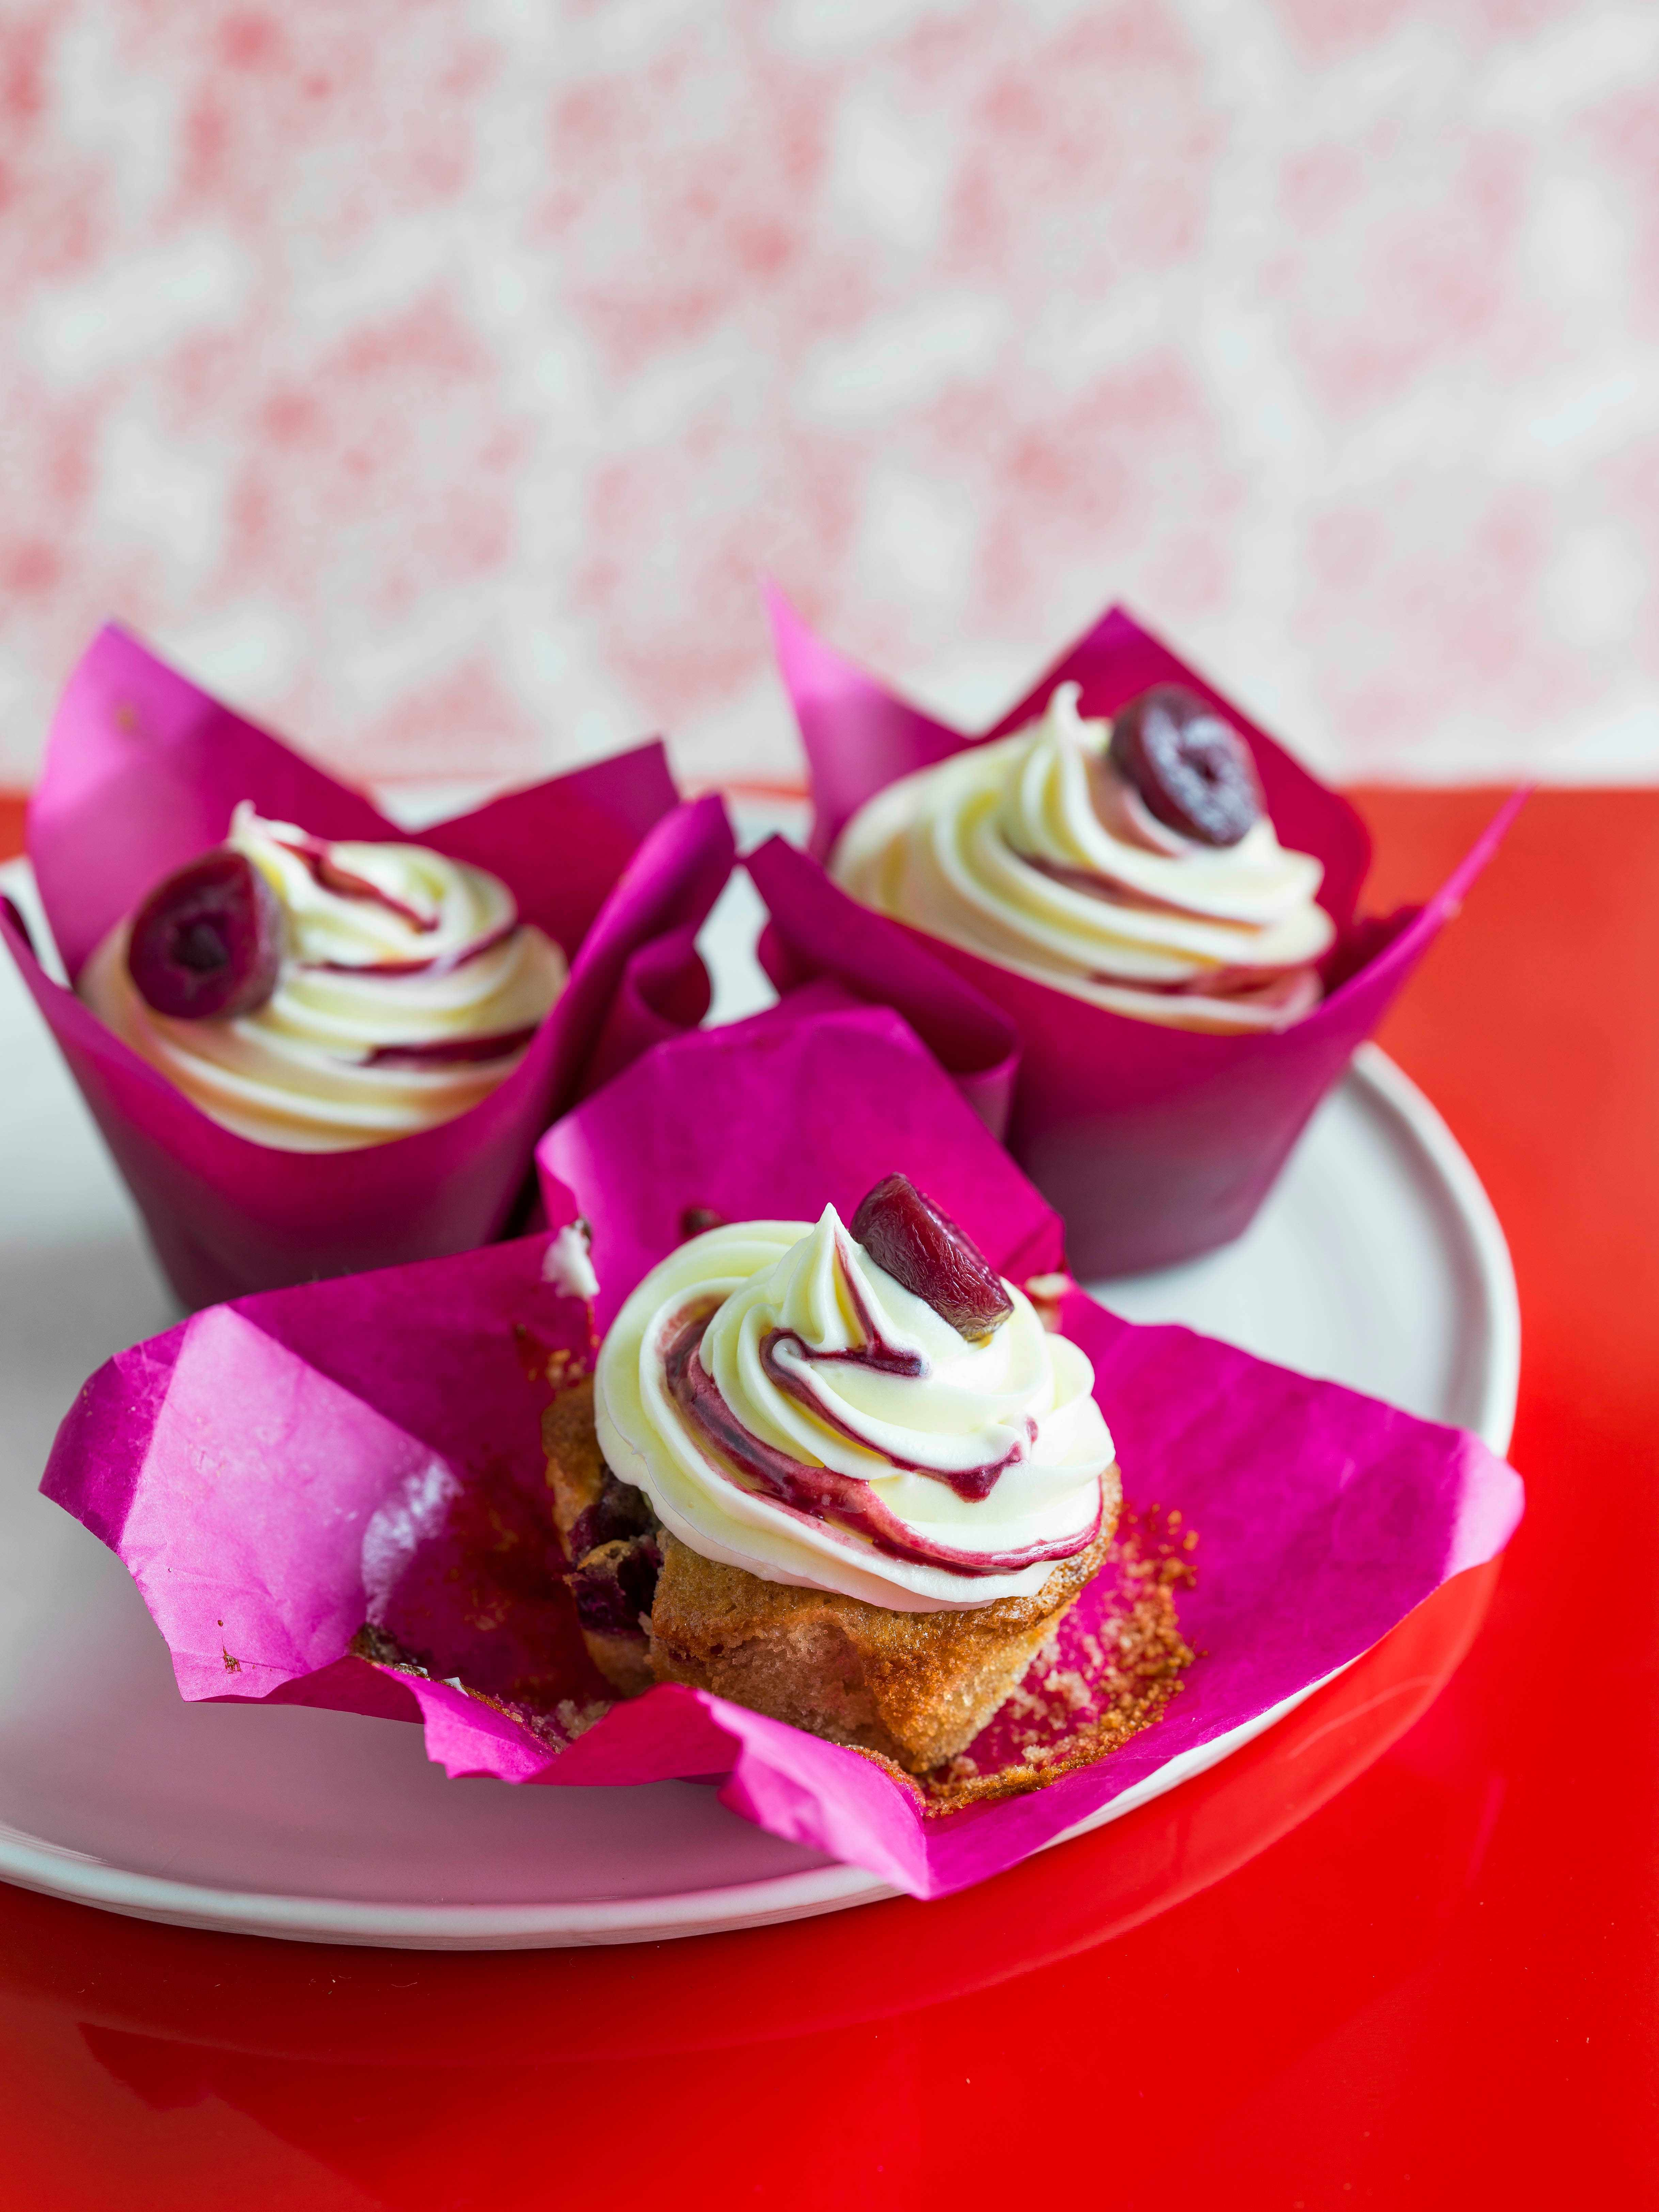 Sour cherry cakes with cream cheese frosting